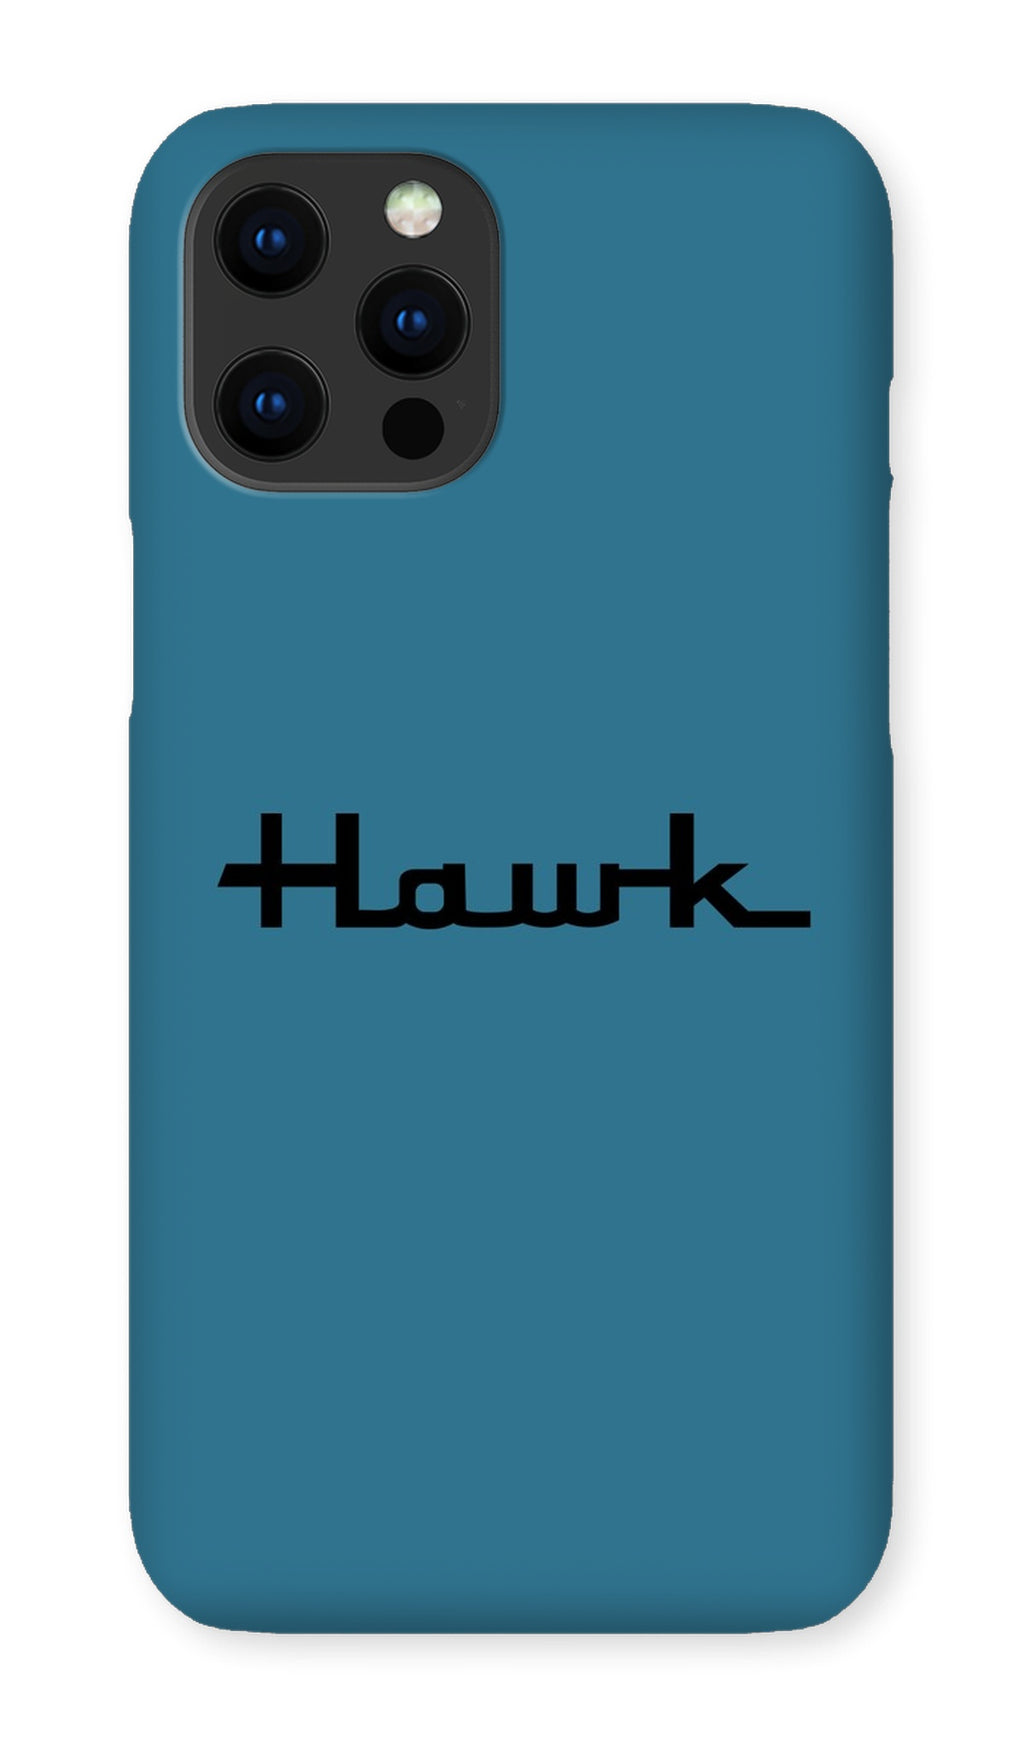 Studebaker® Hawk Phone Case